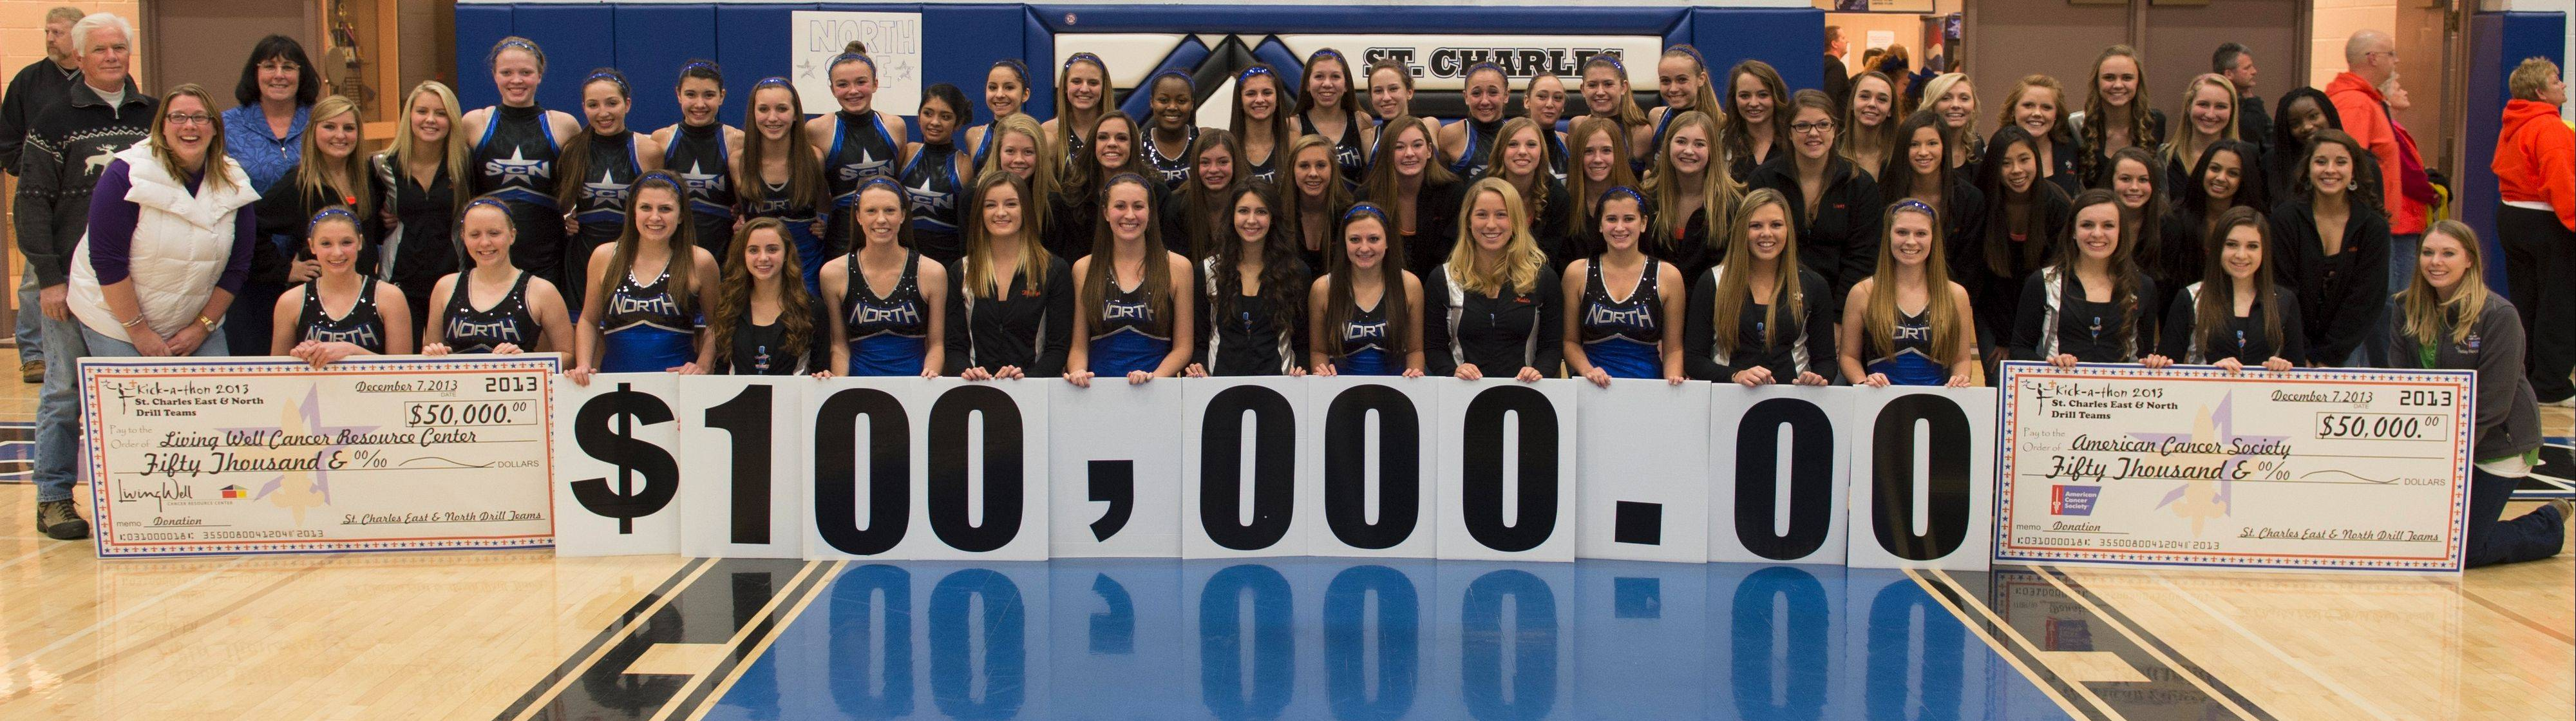 The St. Charles East and St. Charles North Drill Teams, pictured Saturday night before the schools' boys basketball game, raised $100,000 this fall at their annual Kick-A-Thon.